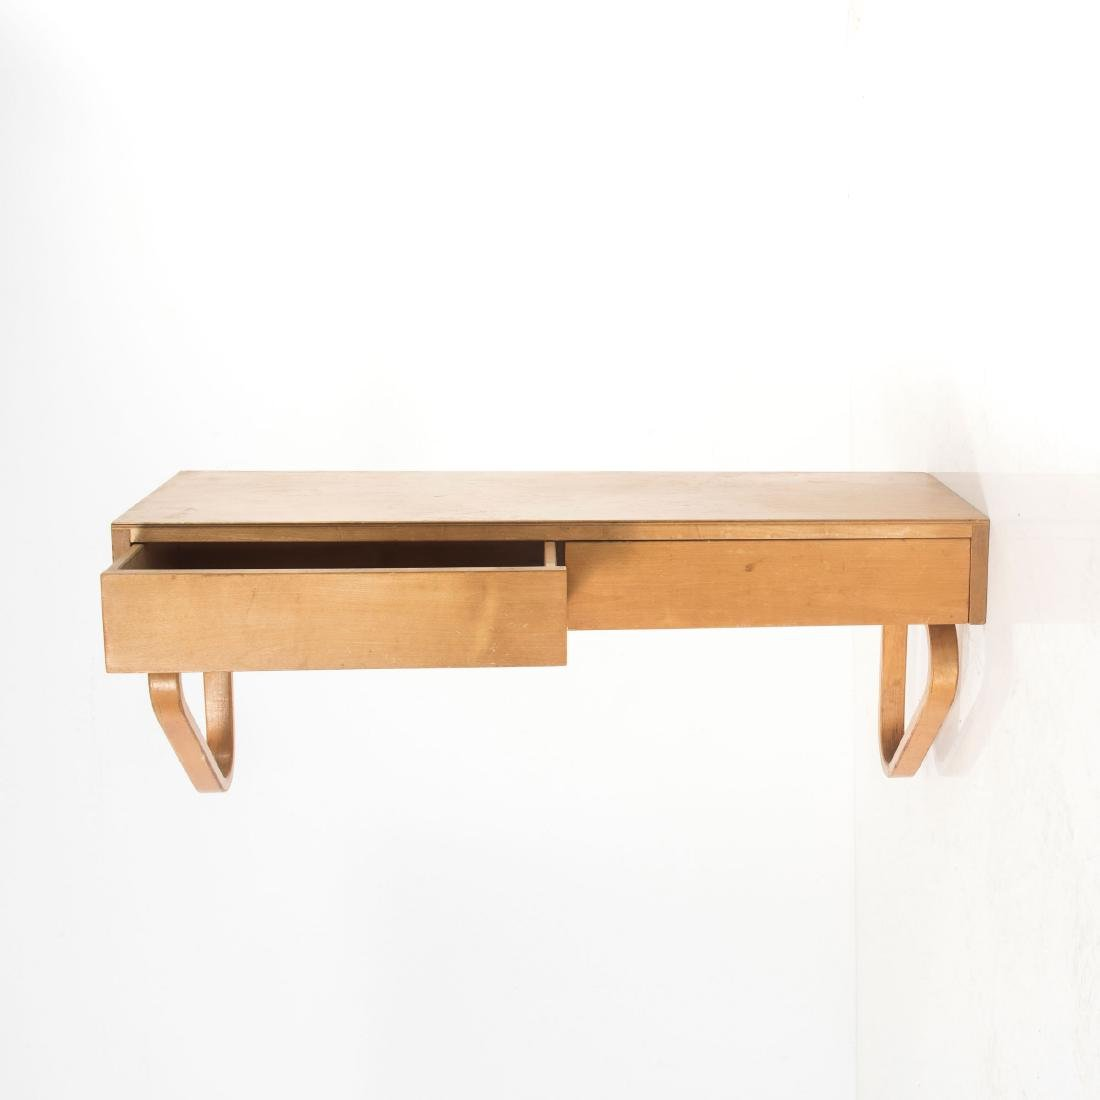 Small shelf with two drawers, c. 1936-38 - 3